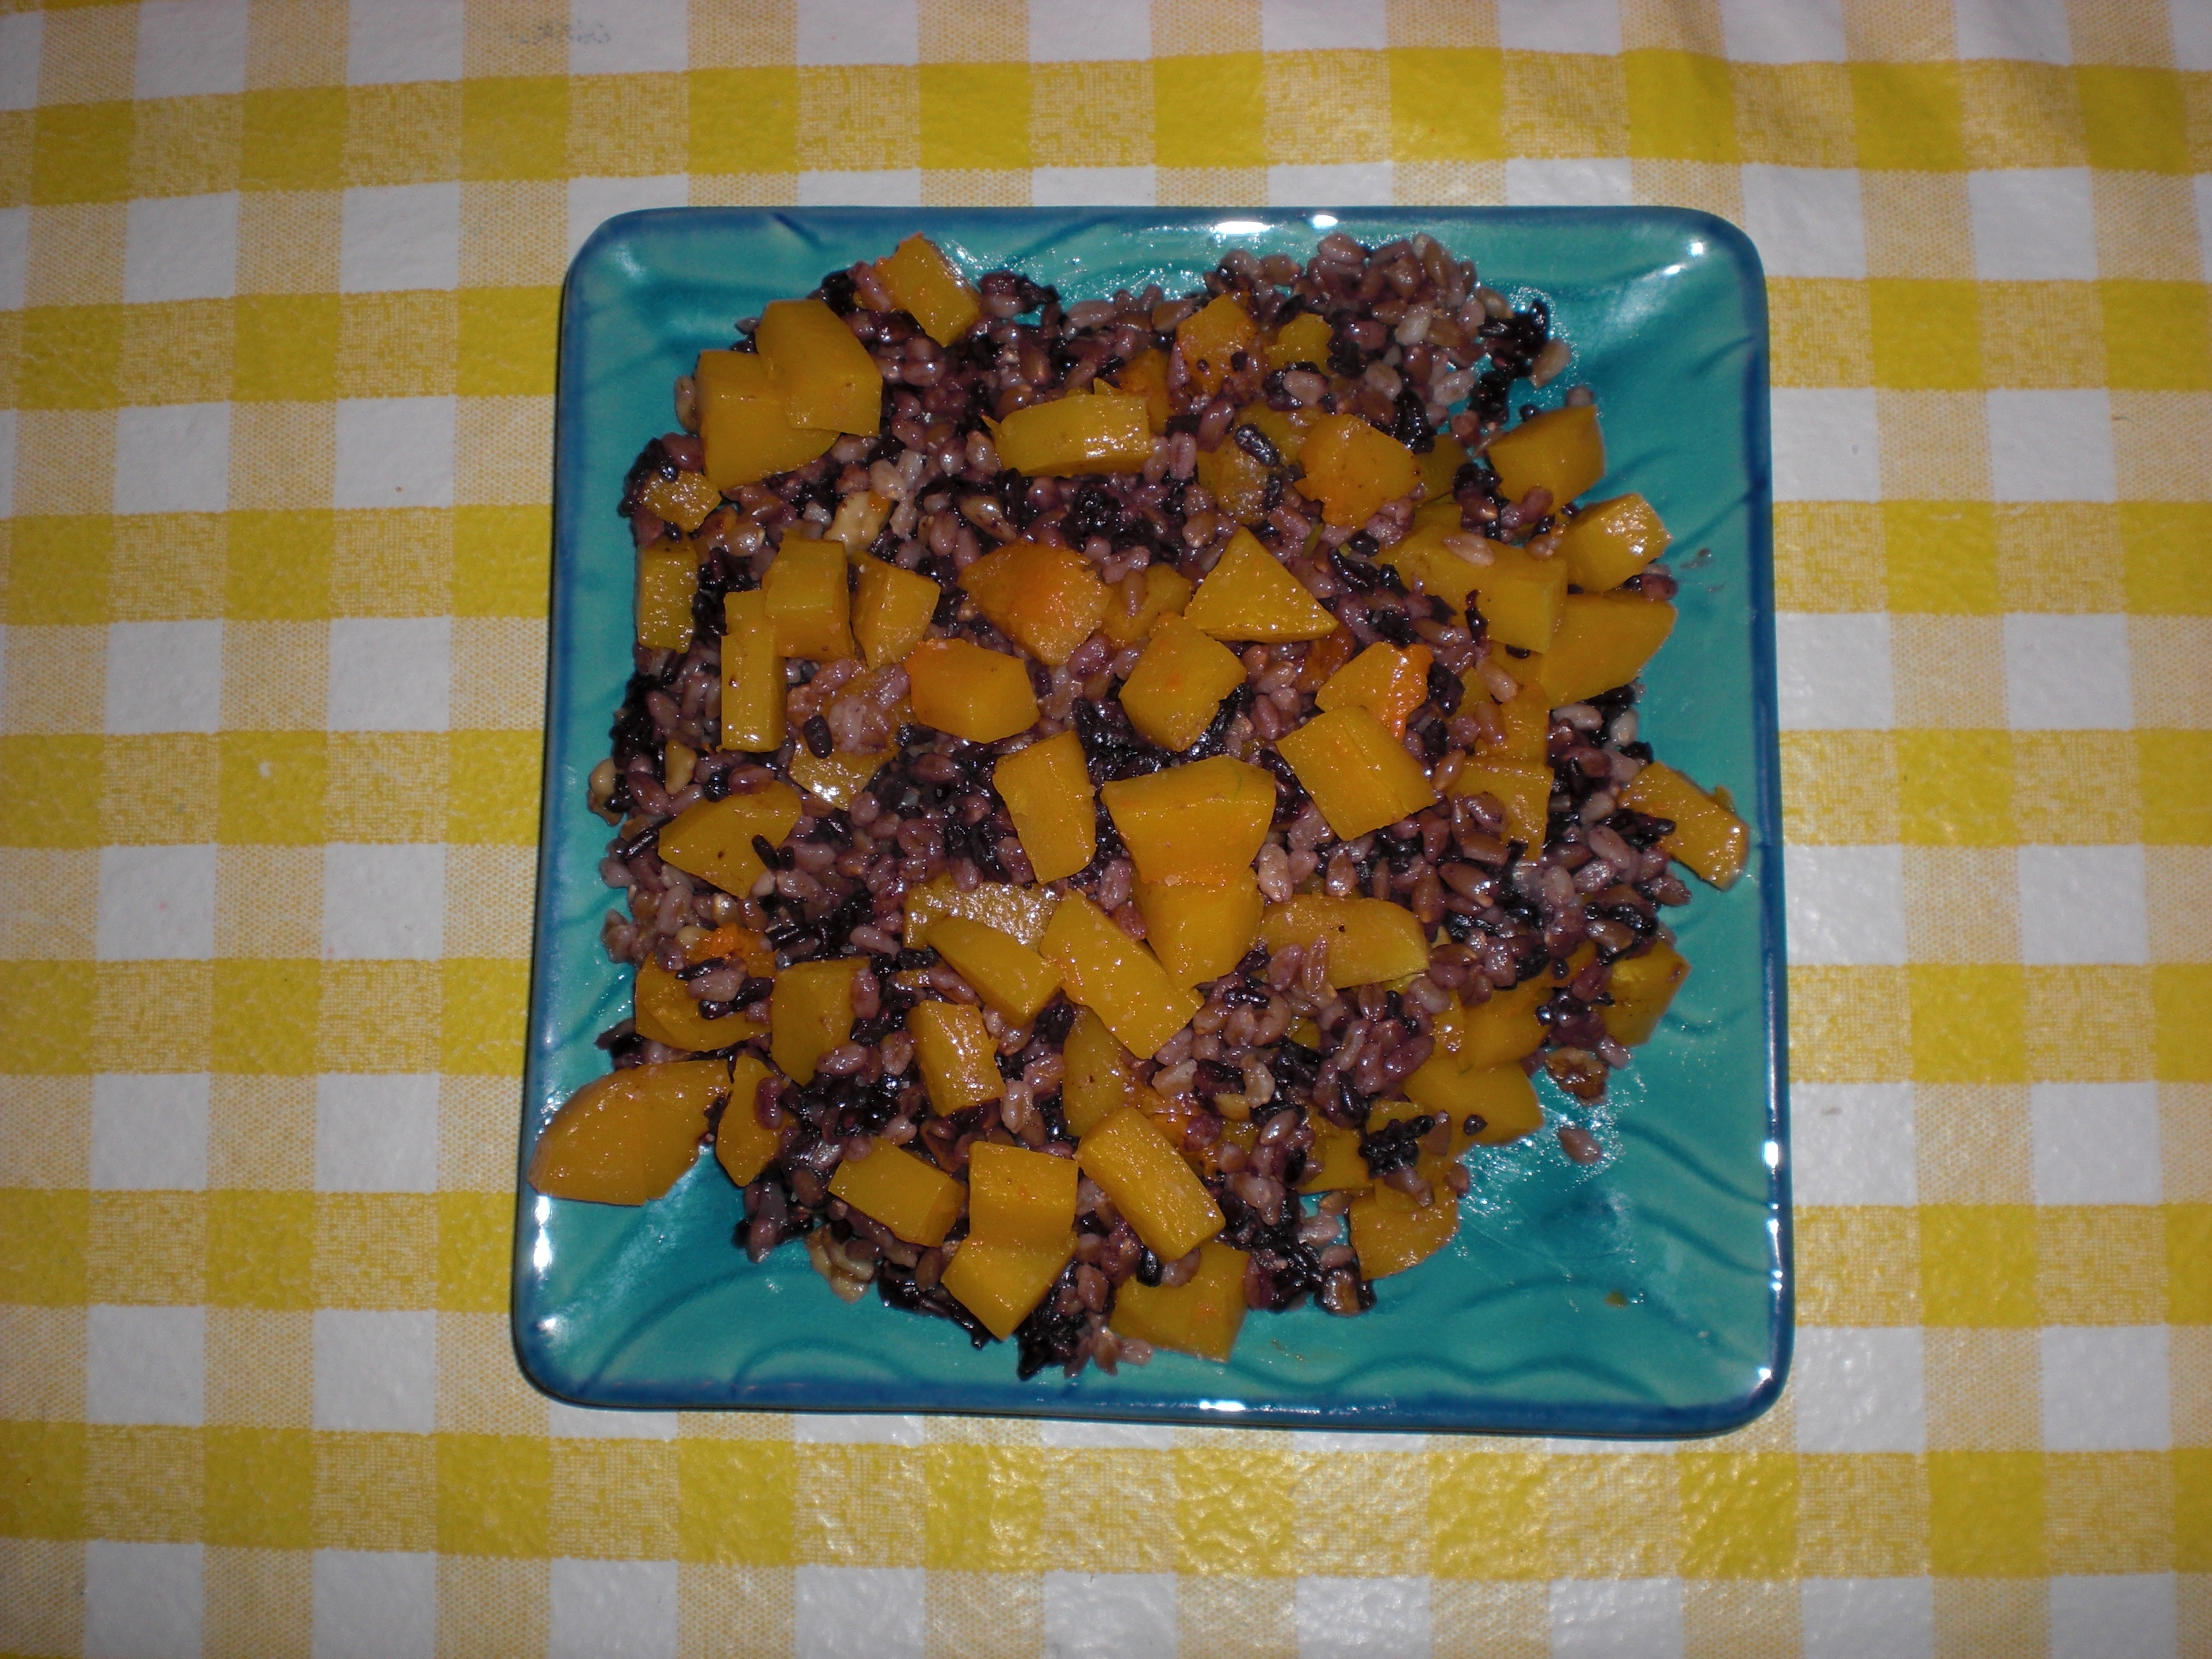 Roasted Butternut Squash with Autumn Grains, Browned Butter, Walnuts and Sage